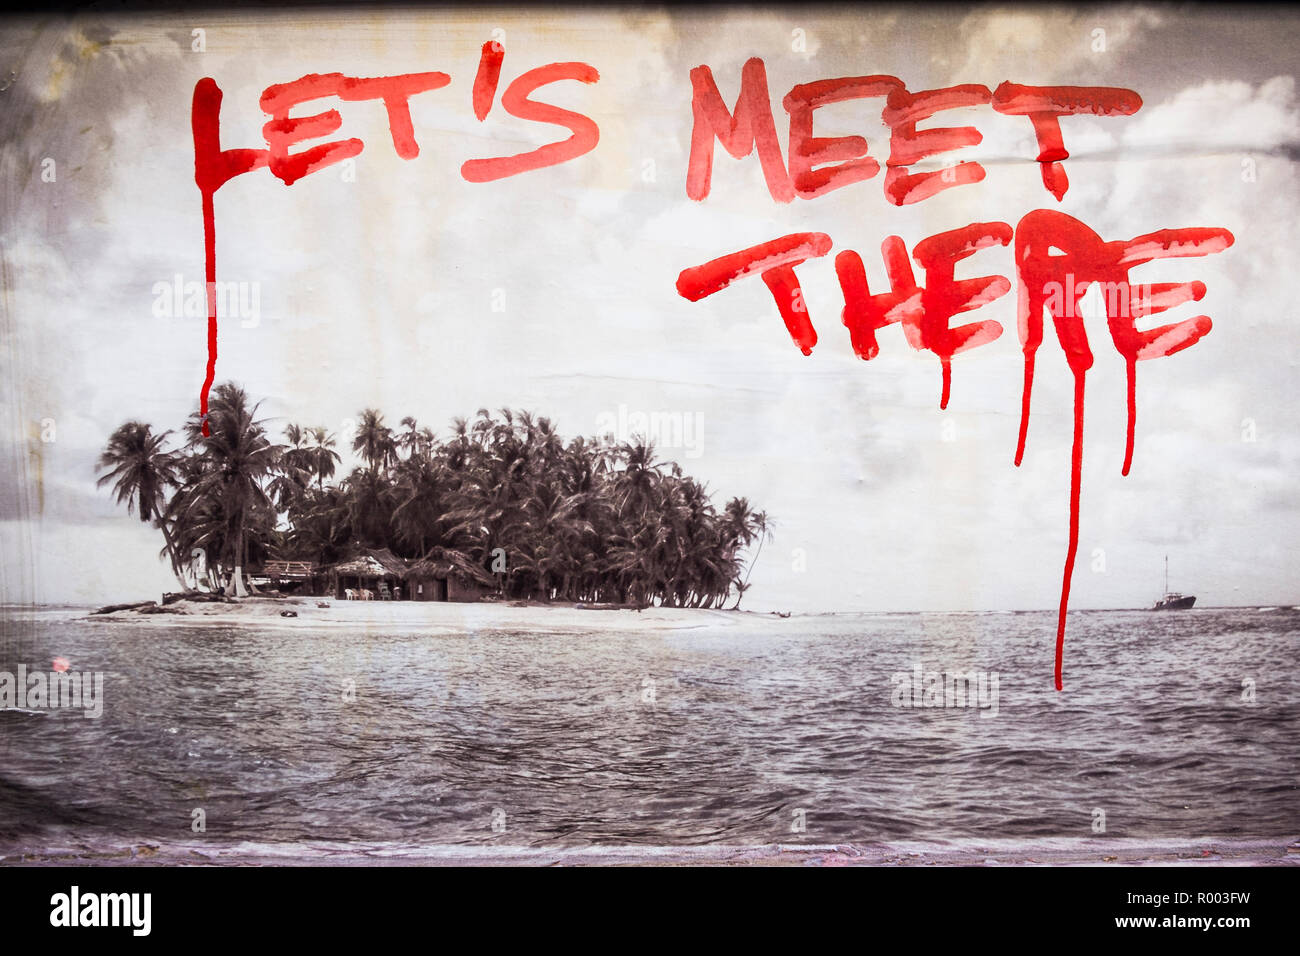 black and white photograph of a tropical island and the inscript 'let´s meet there' - Stock Image